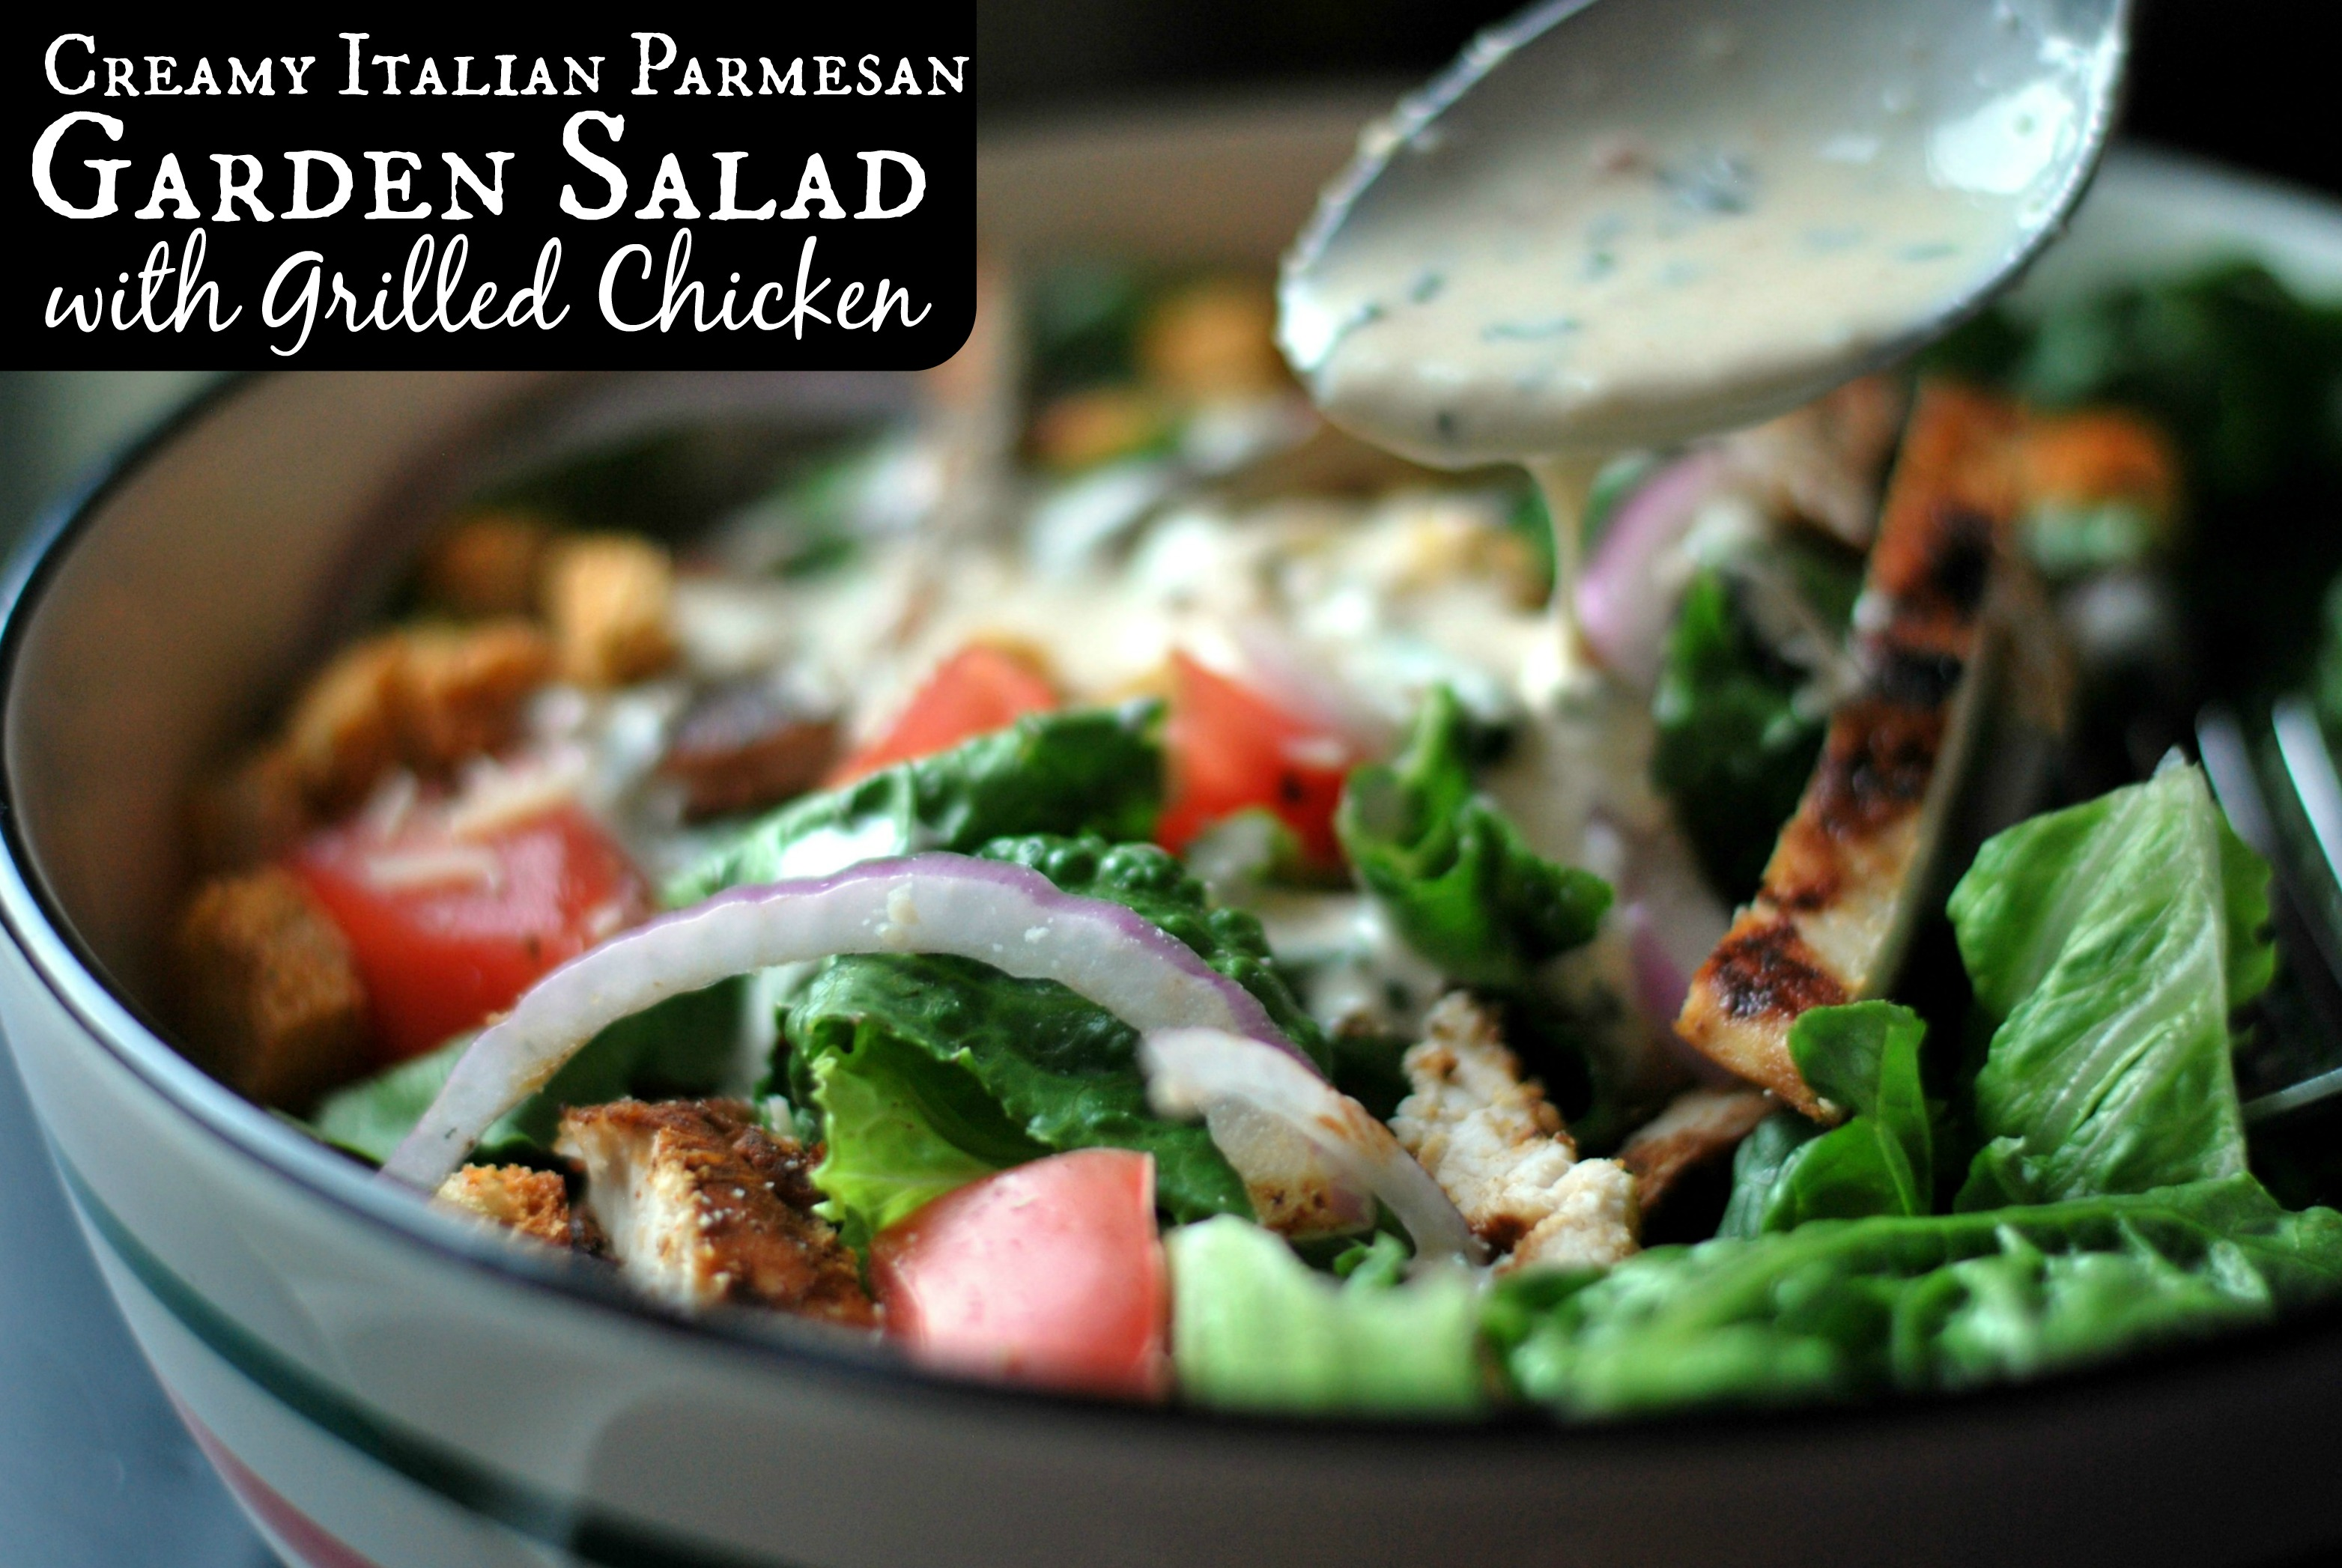 Creamy Italian Parmesan Garden Salad With Chicken